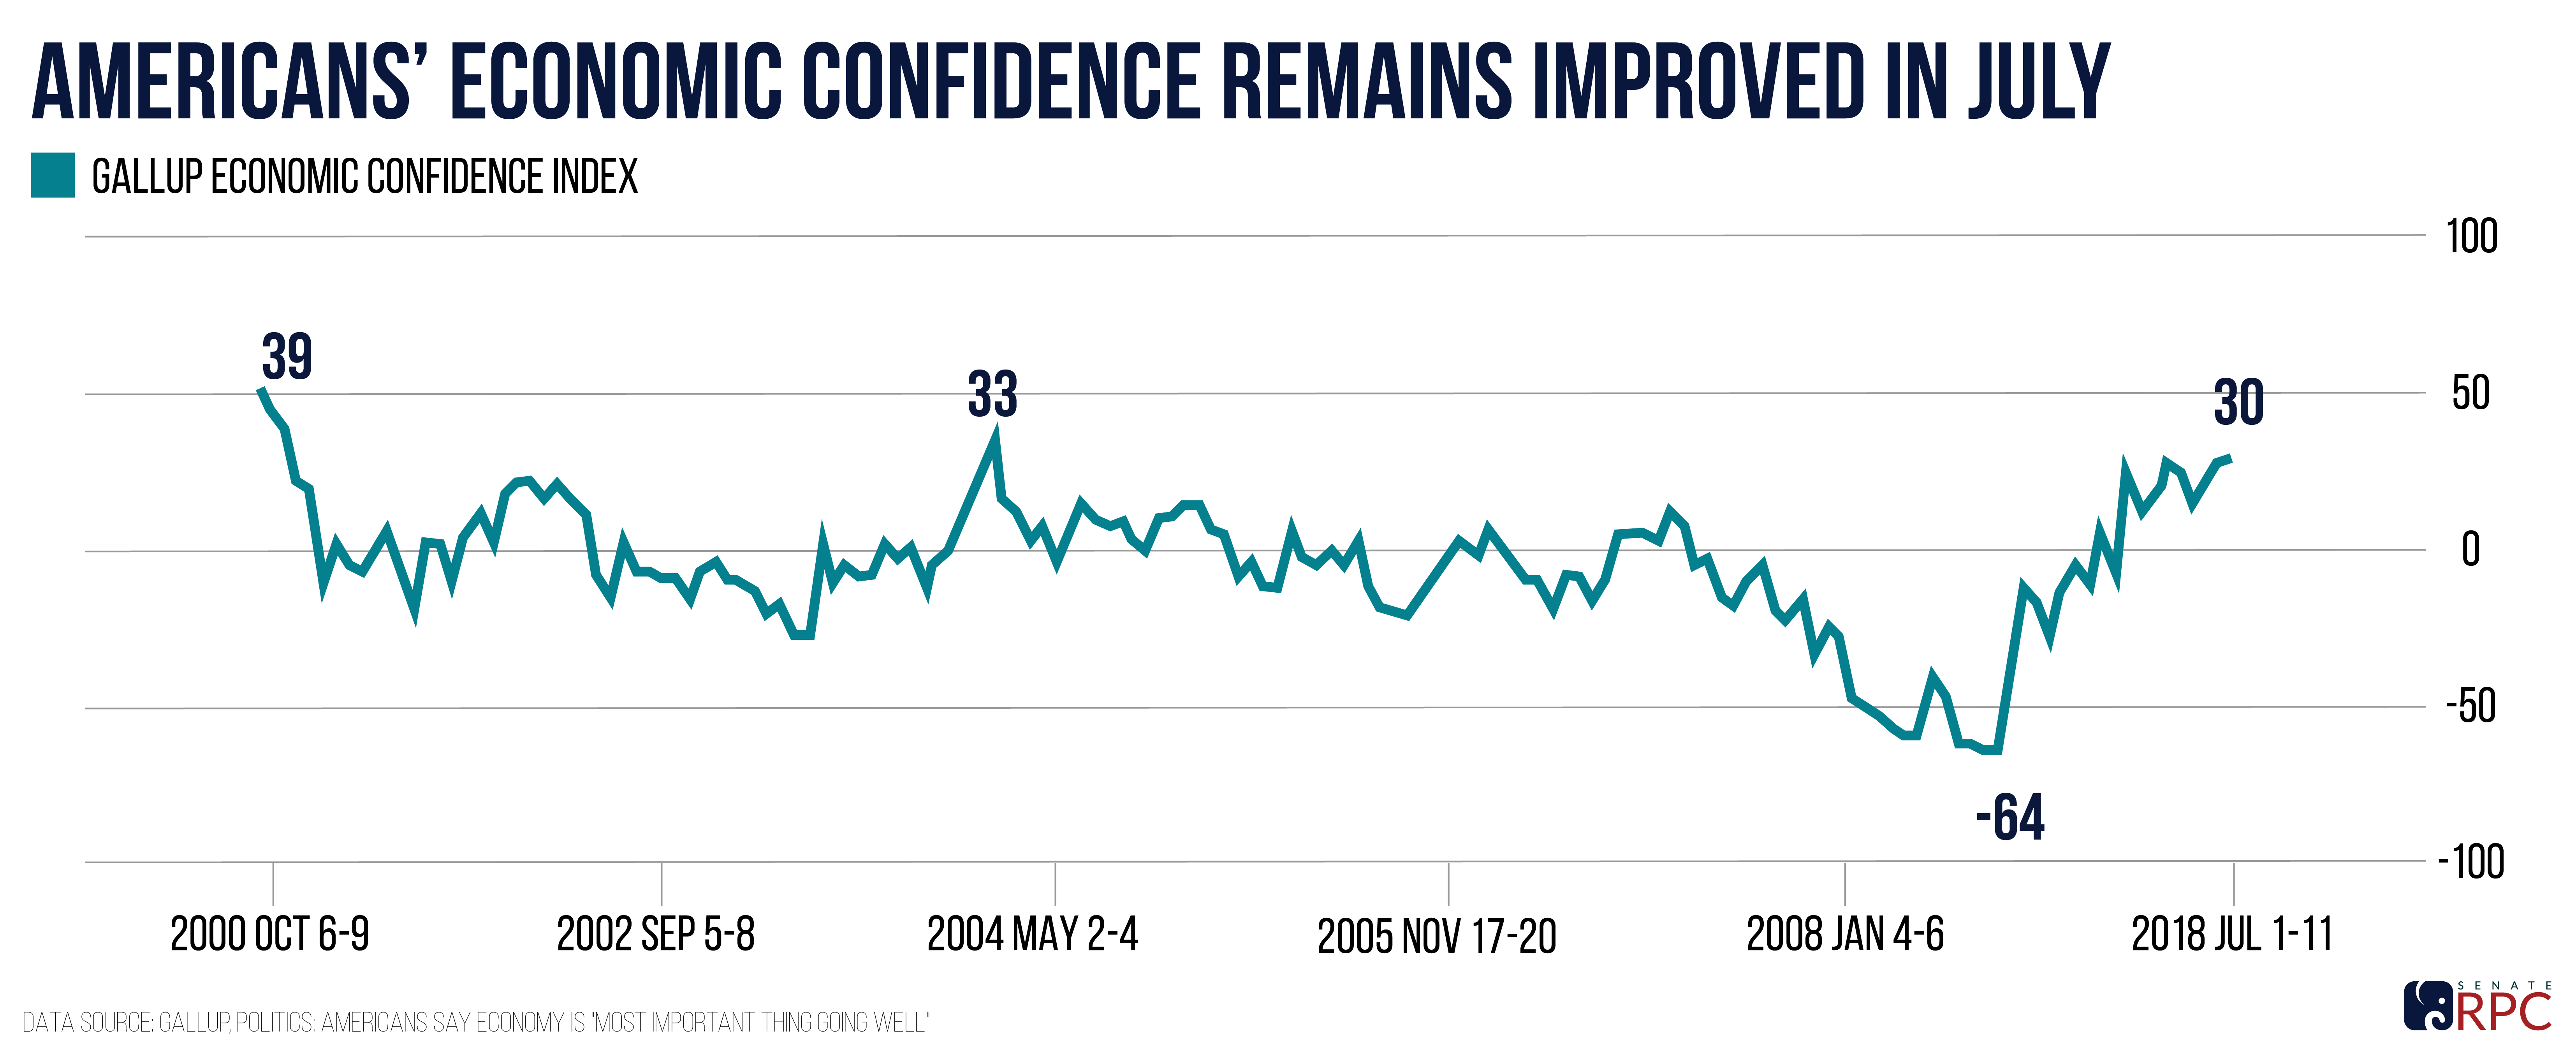 Americans' Economic Confidence Remains High